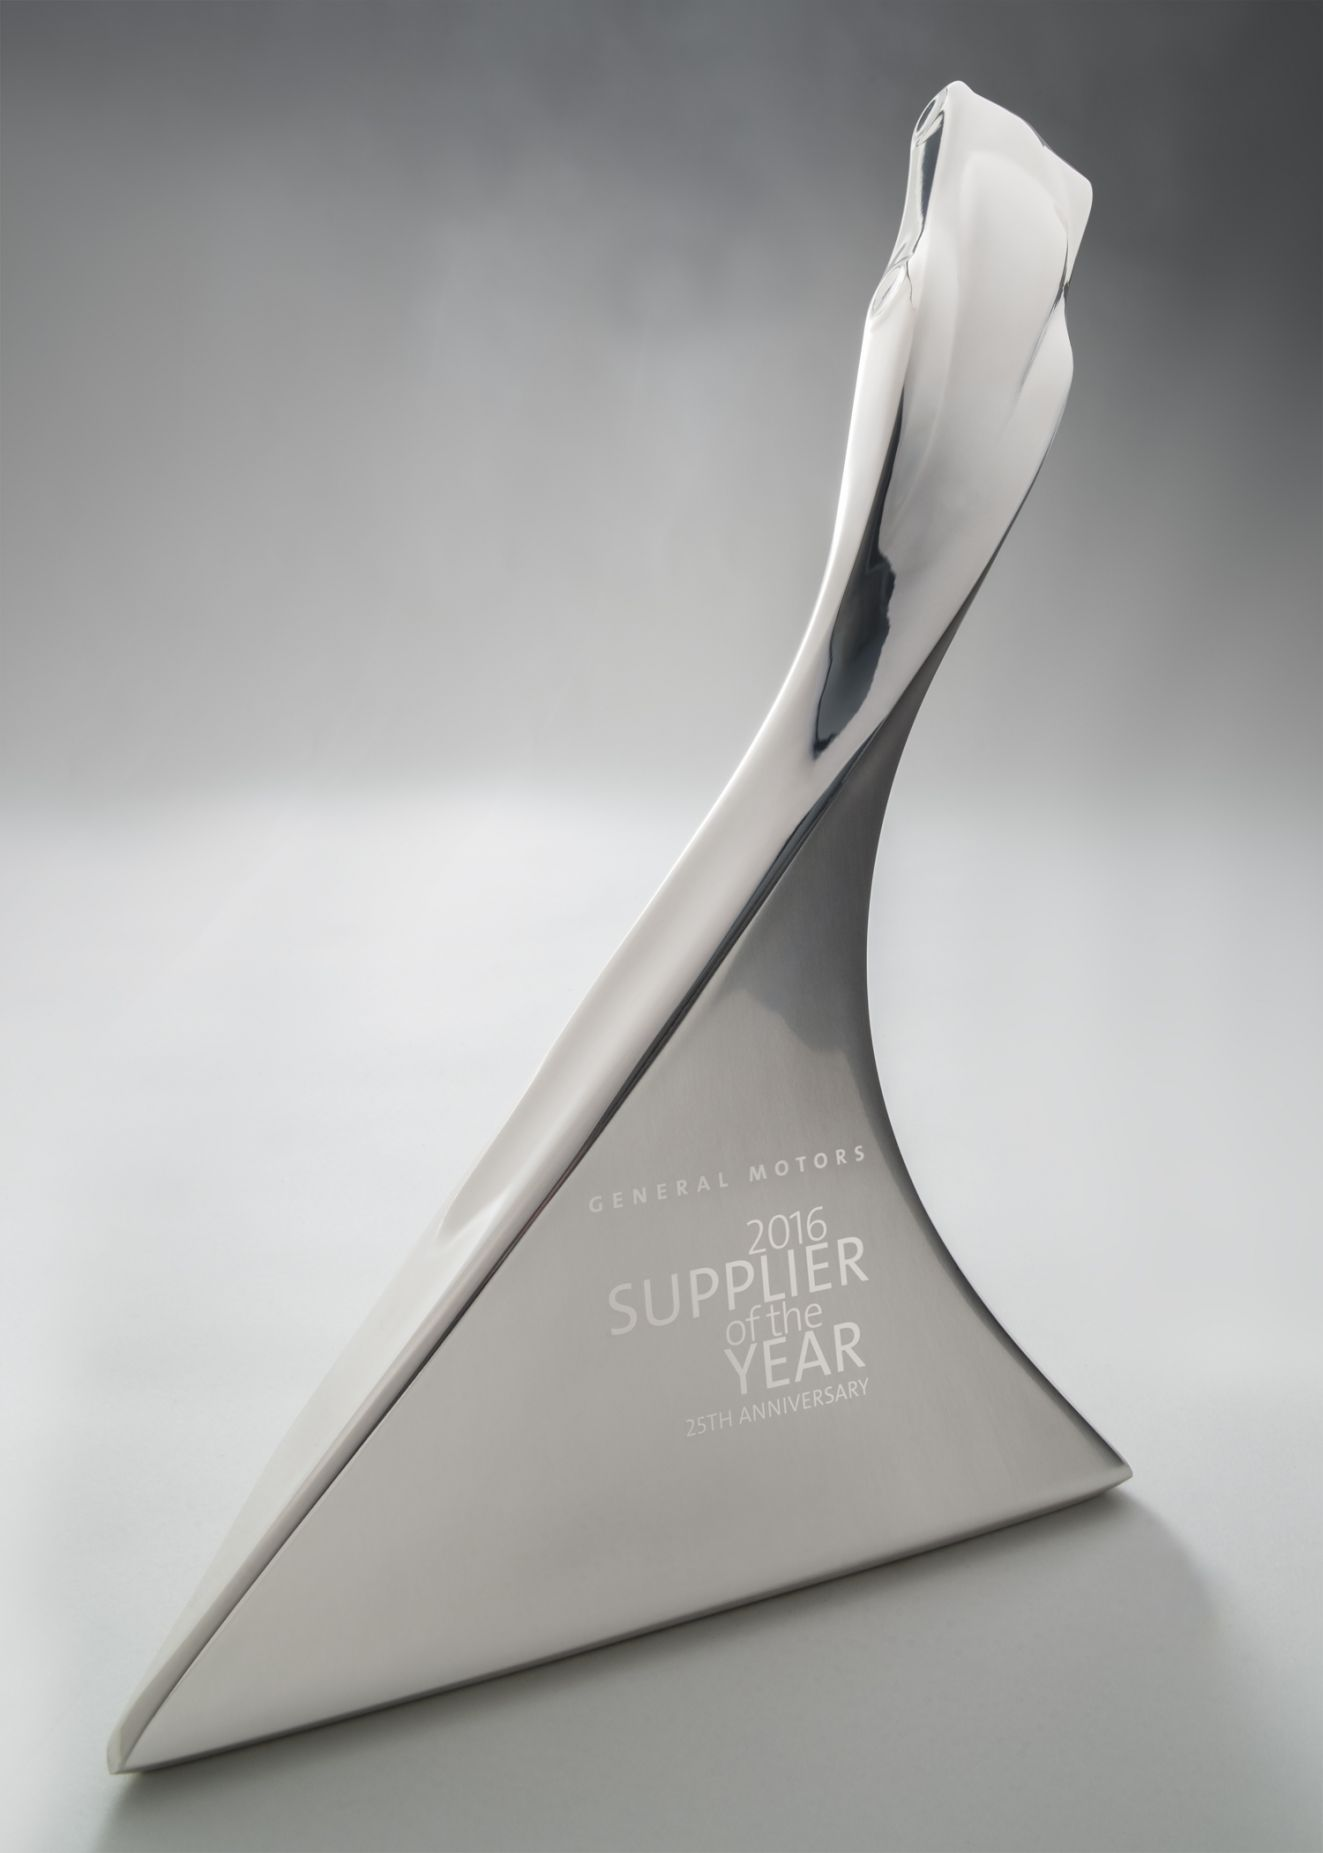 Preh Named Gm Supplier Of The Year For 2016 Preh Inc